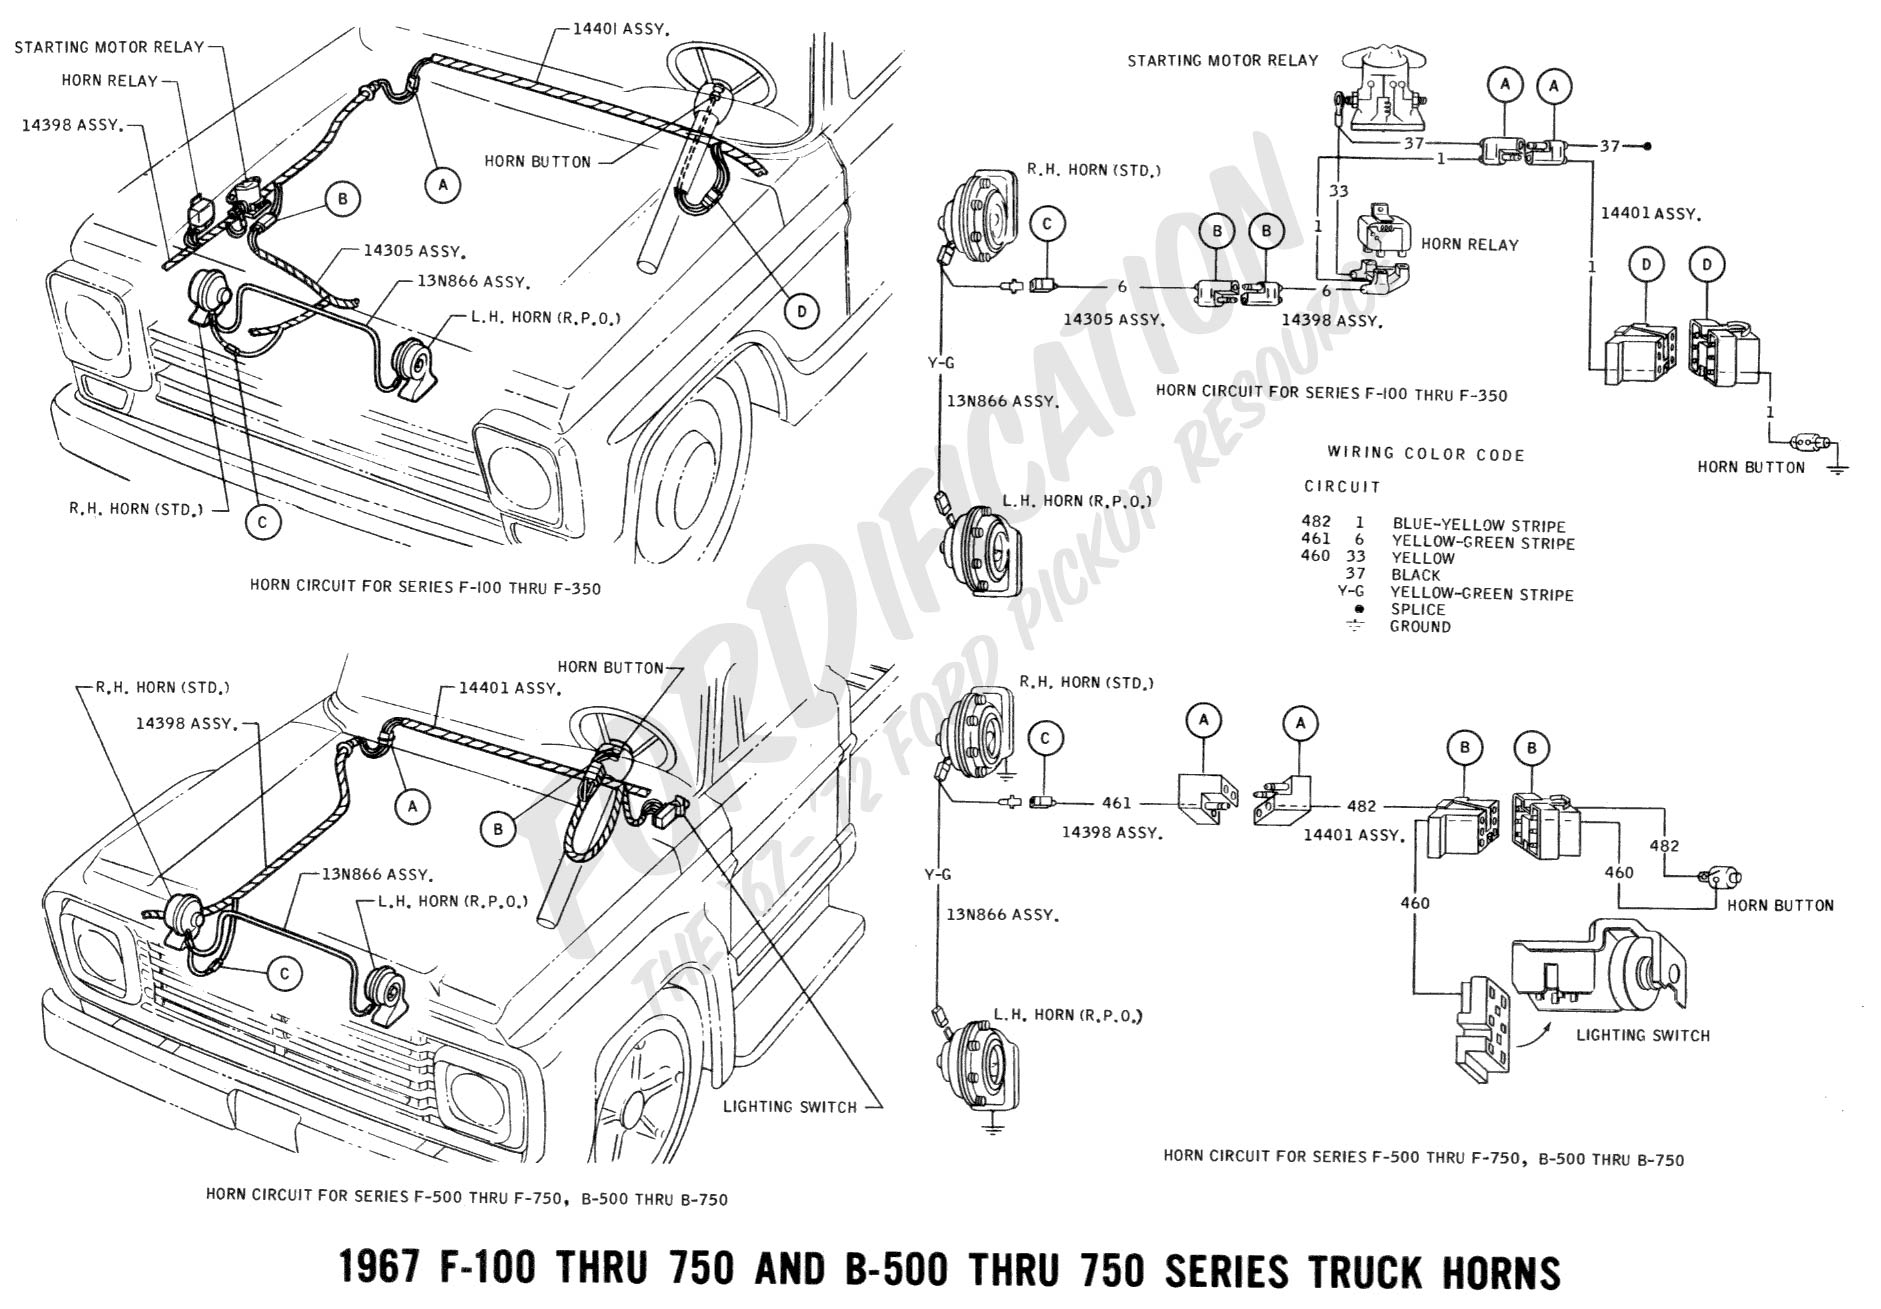 hight resolution of 73 ford f 250 wiring diagram wiring diagram 73 ford f250 wiring wiring diagram repair guidesford